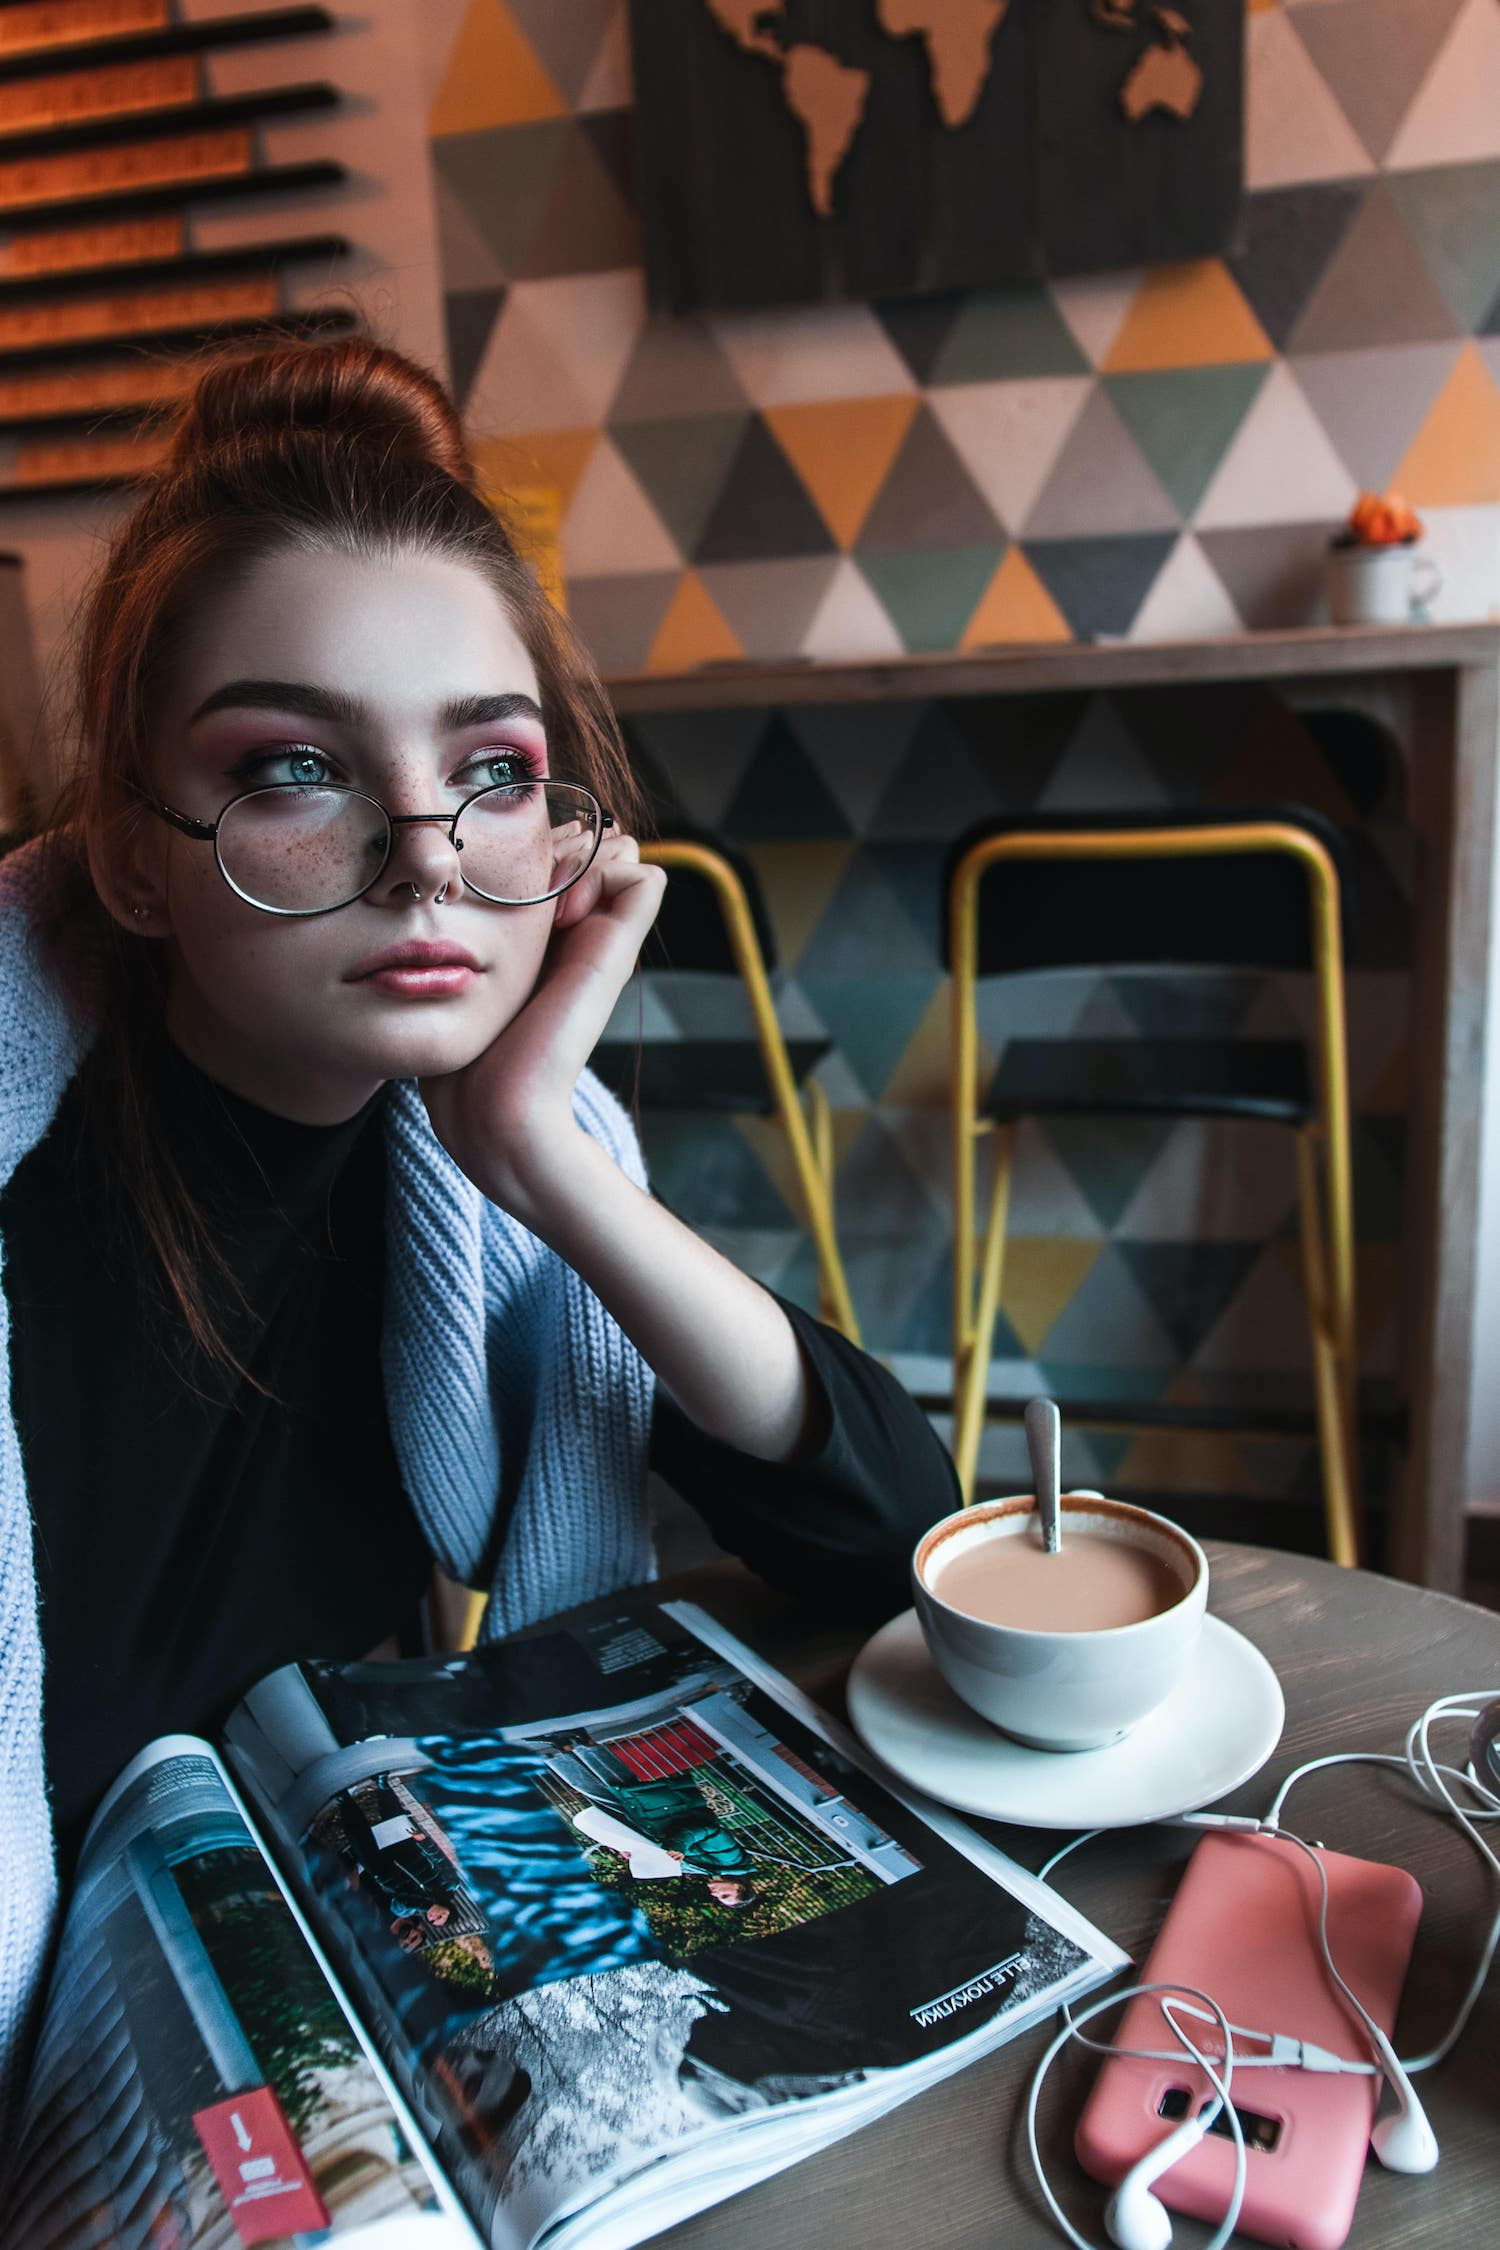 A young girl wearing glasses in a café, drinking a coffee and reading a magazine.